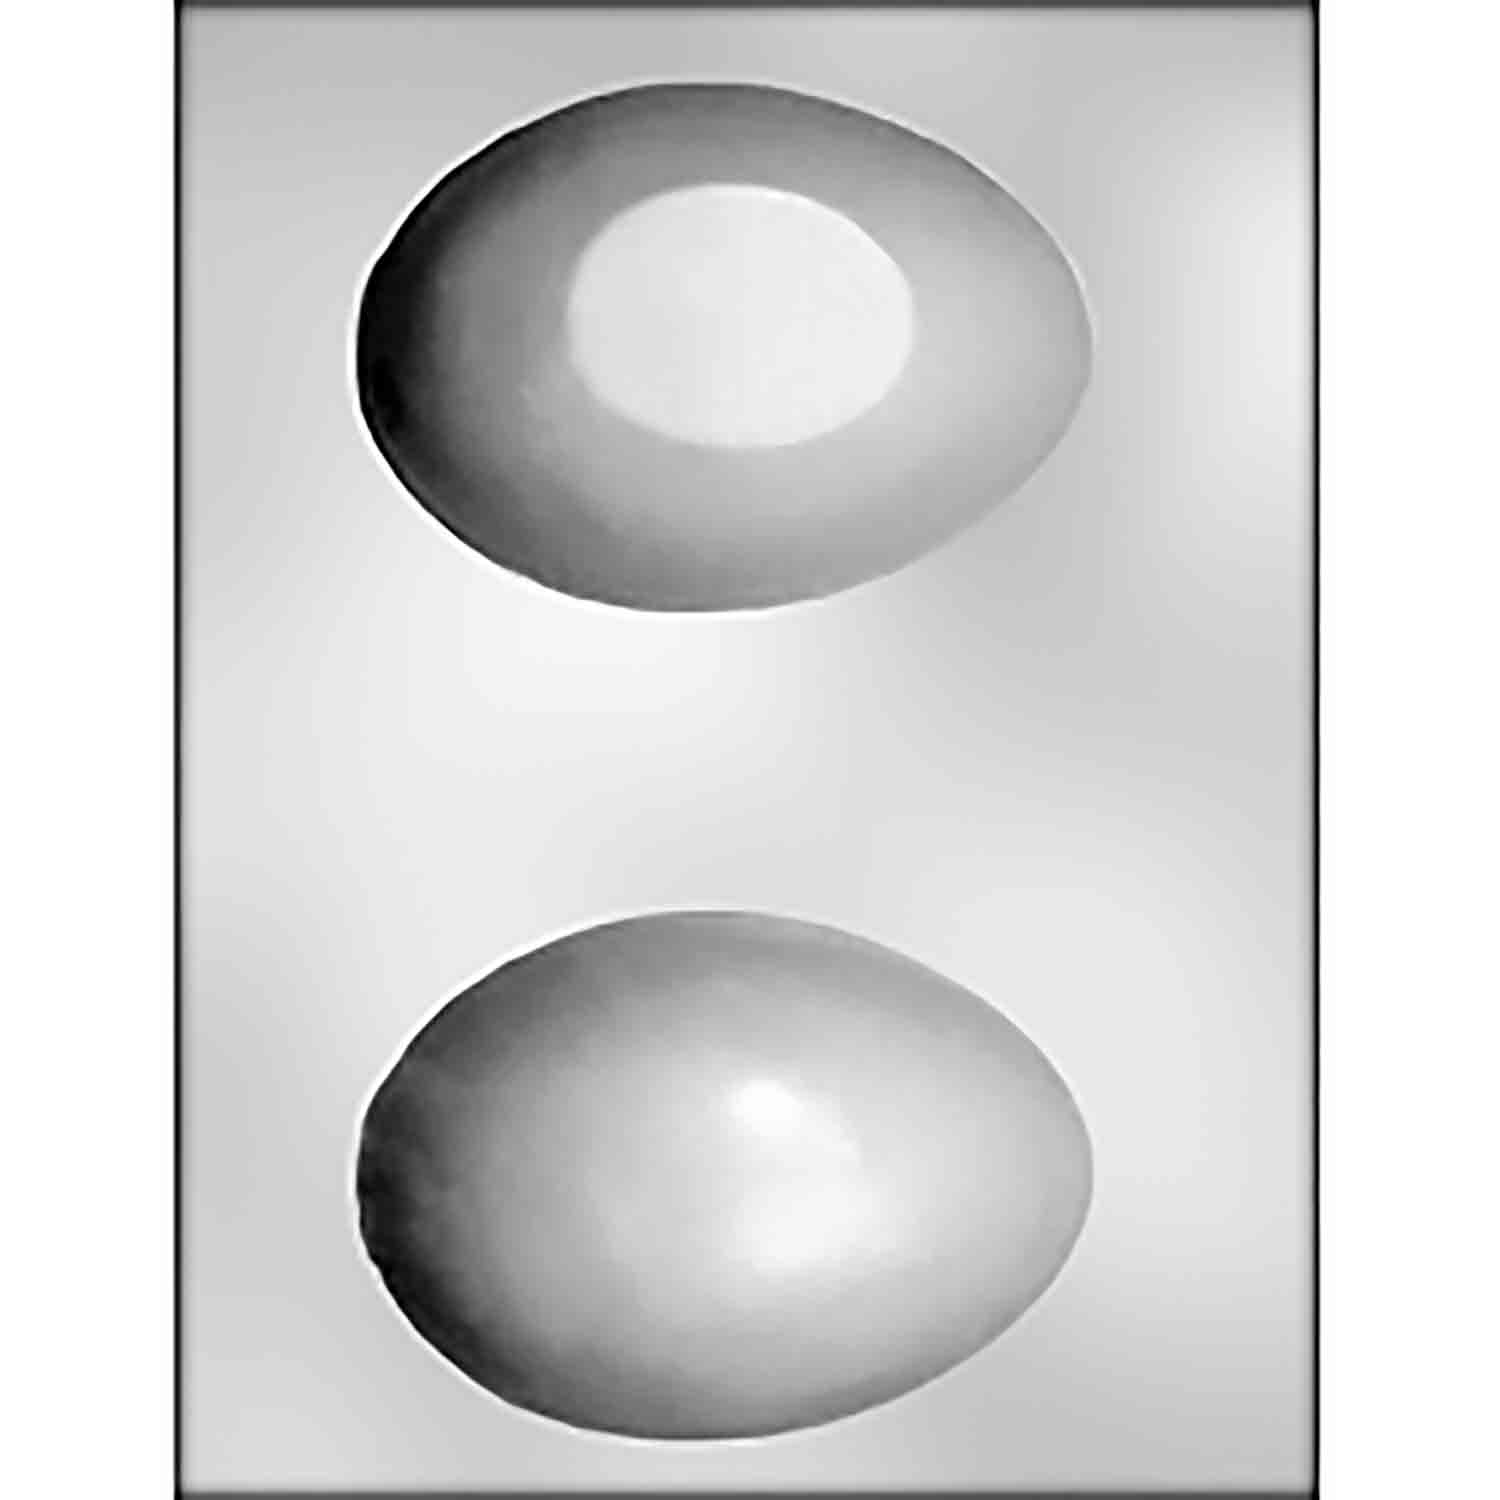 "3D 4 1/2"" Plain Egg Chocolate Candy Mold"